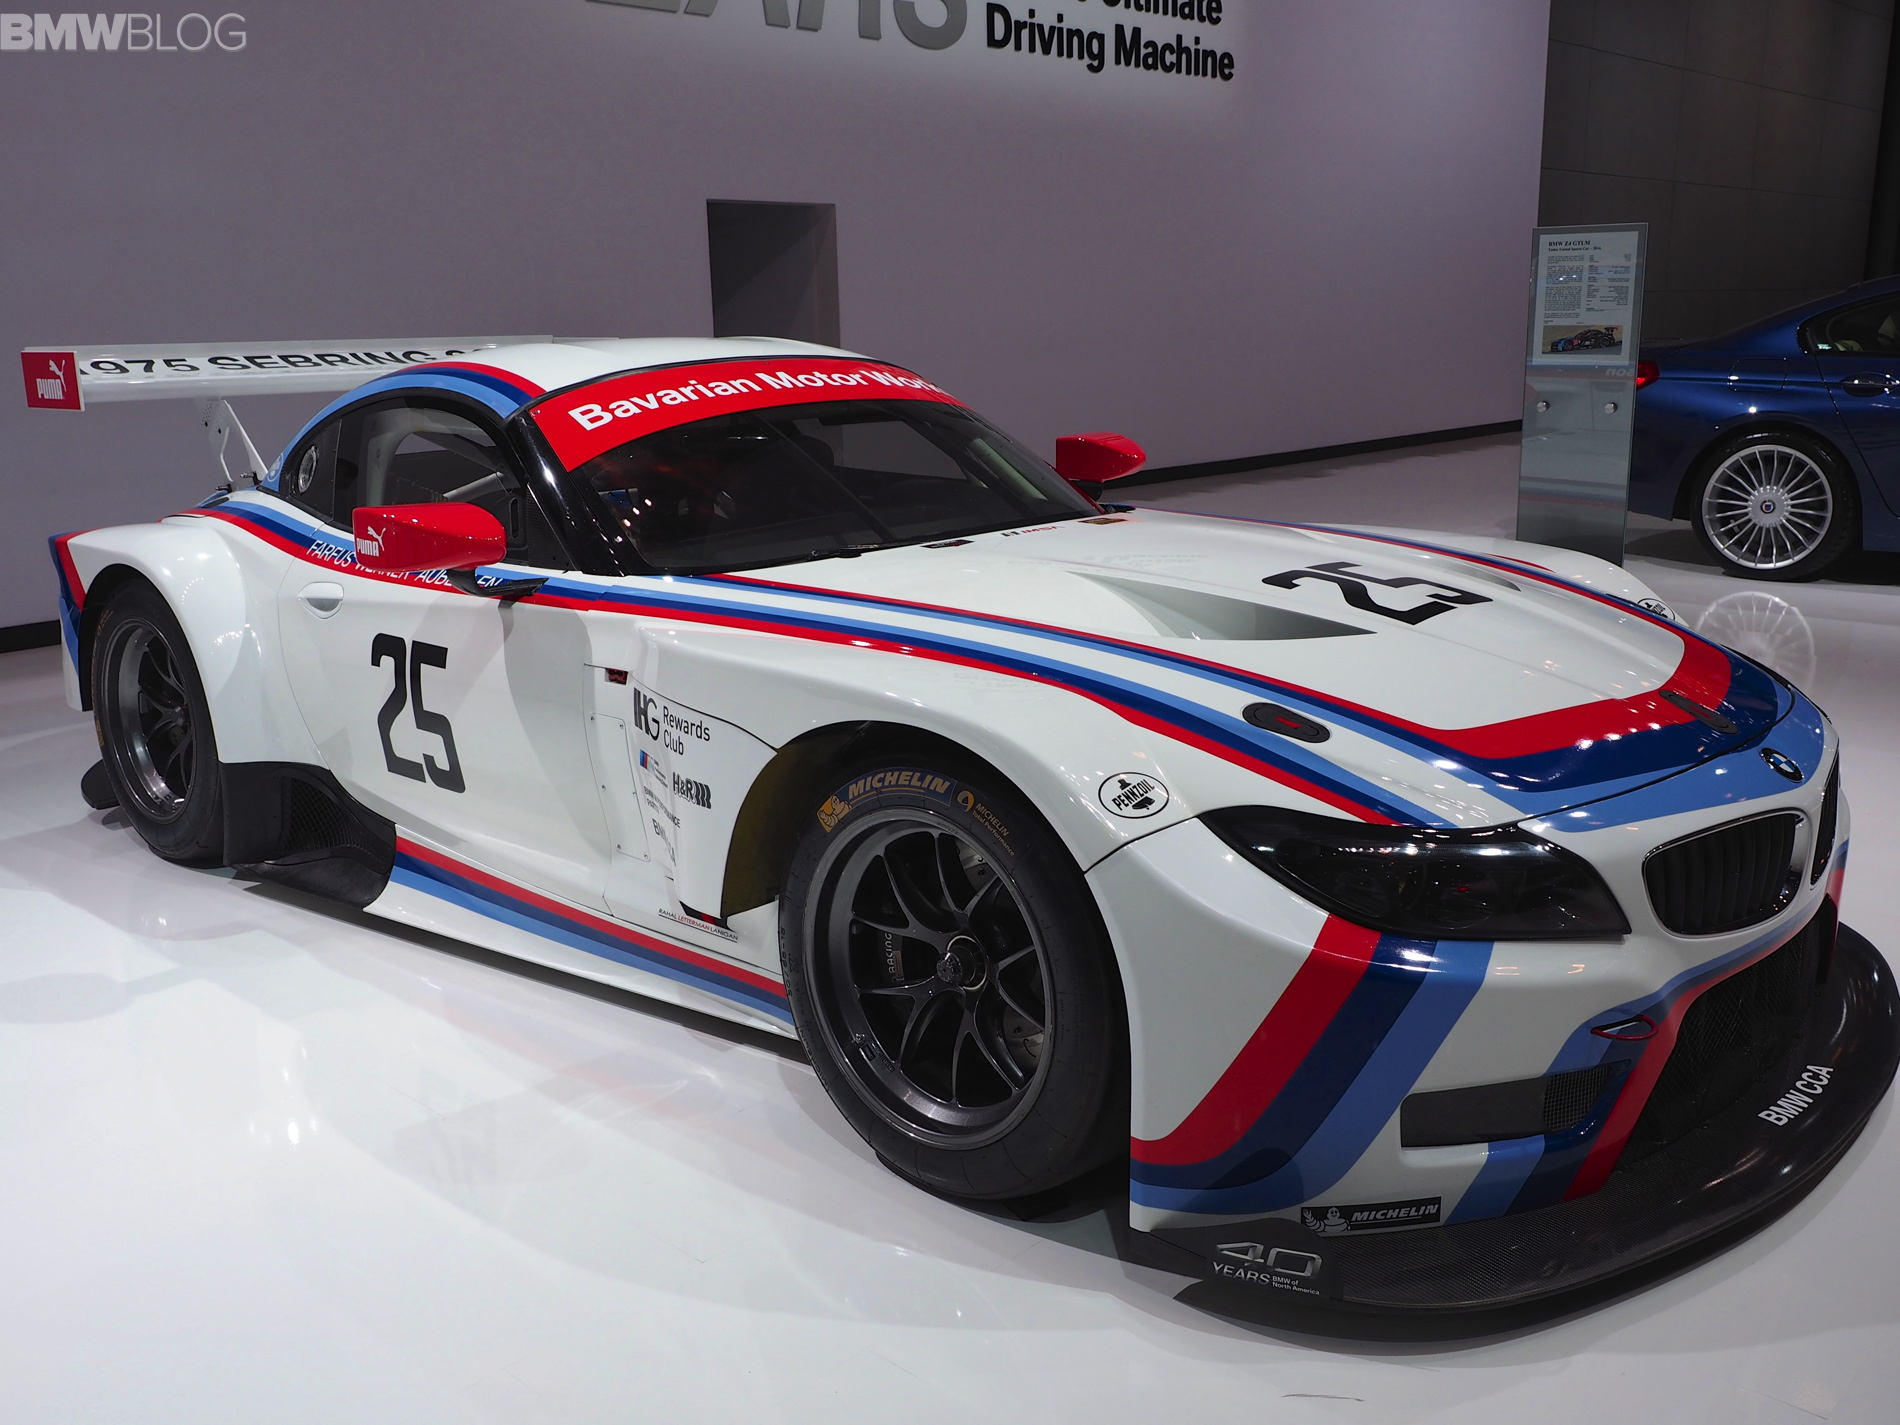 2015 Nyias Bmw Z4 Gtlm Sebring 75 Edition Race Car